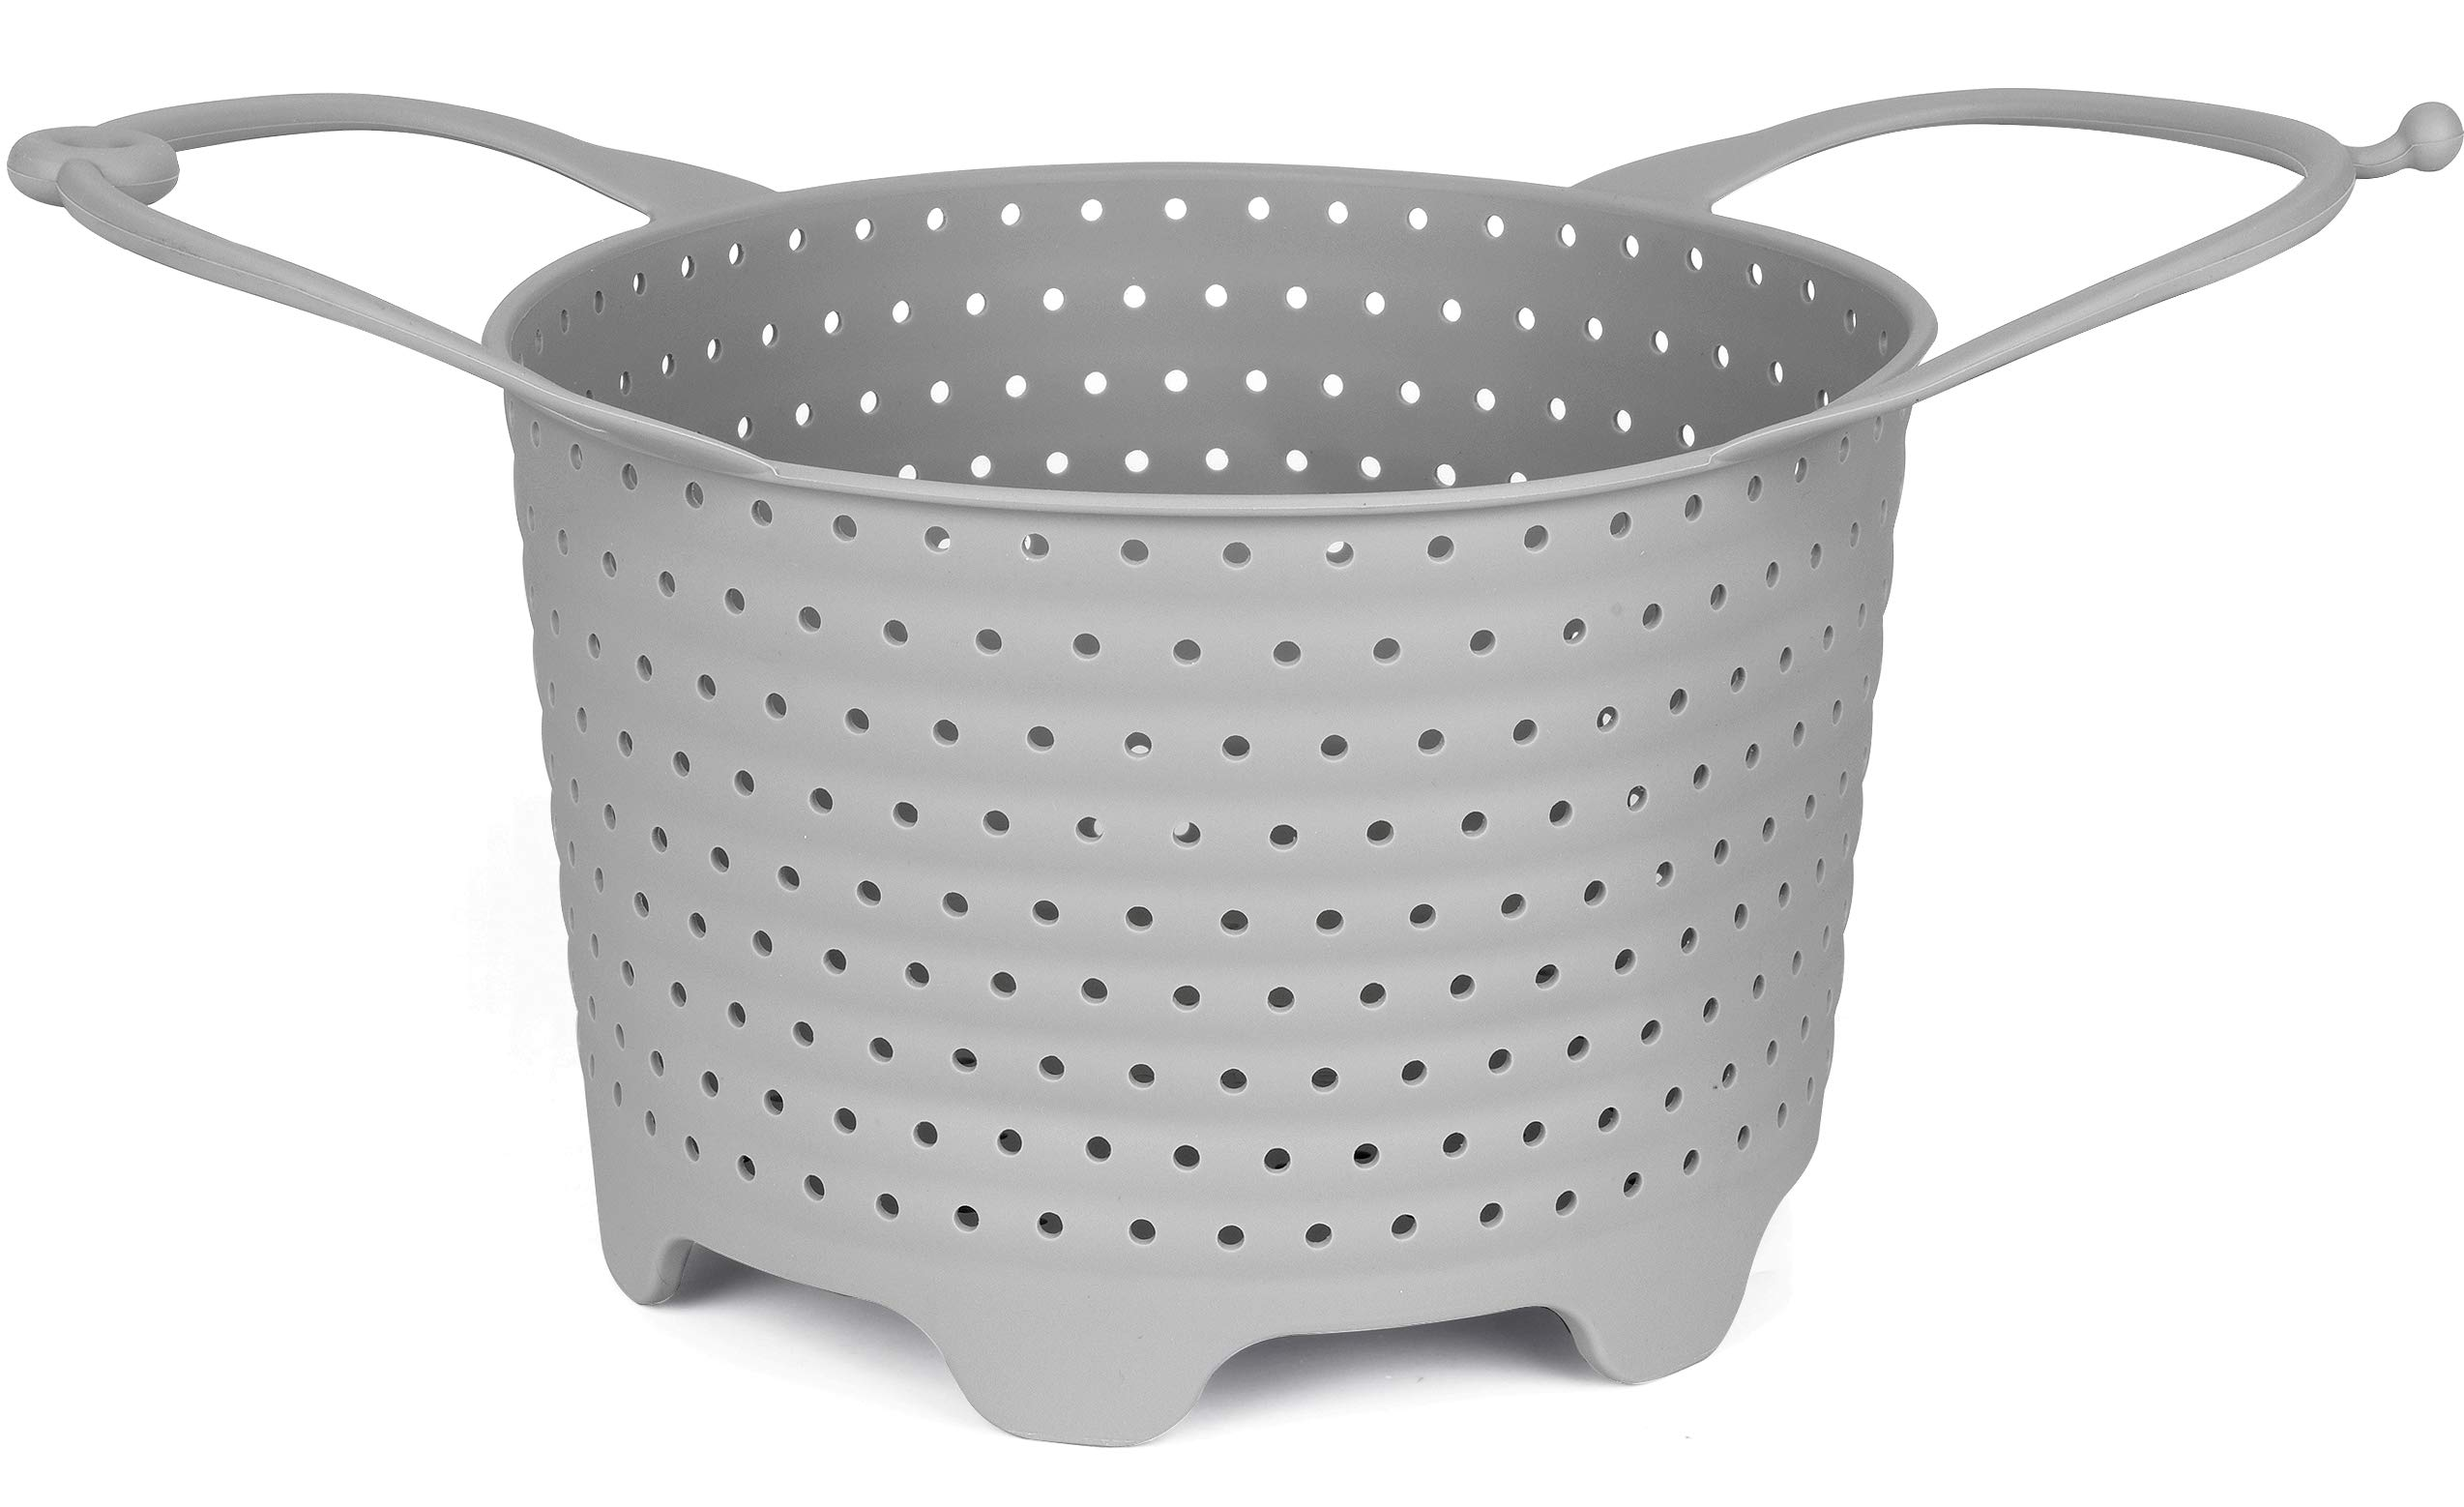 Instant Pot Silicone Steamer Basket I Non-Scratch IP Insert Fits in InstaPot Pressure Cookers and Cooking Pots I Vegetable Steamer or Egg Basket IP Accessory for Instant Pot 6 Quart by QuickerNest